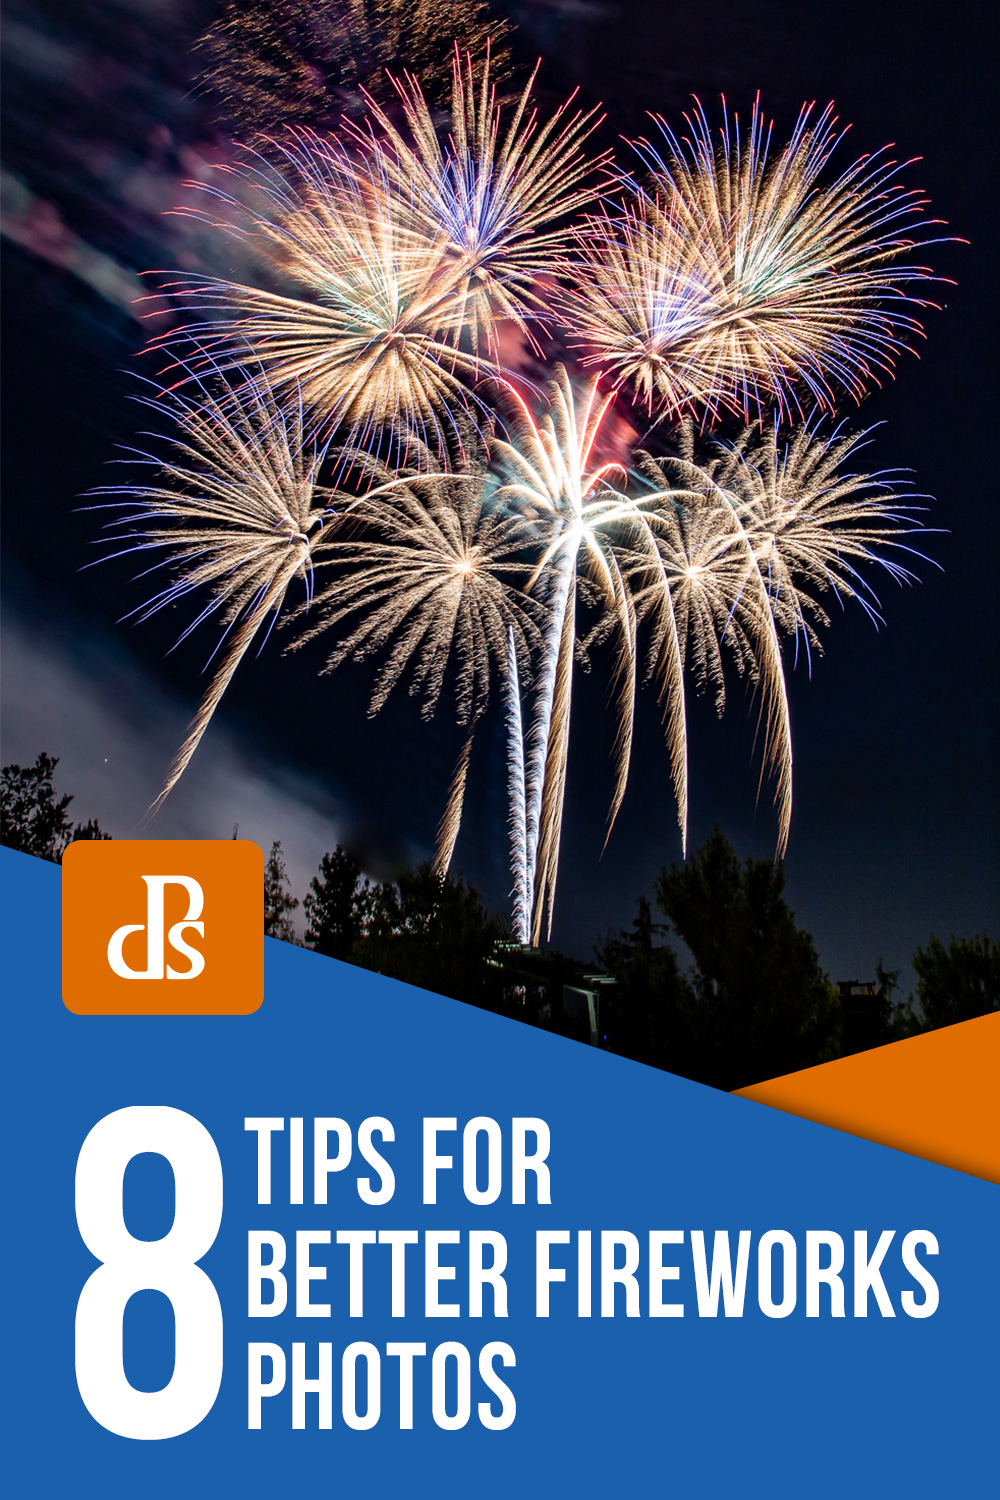 8 tips for better fireworks photos